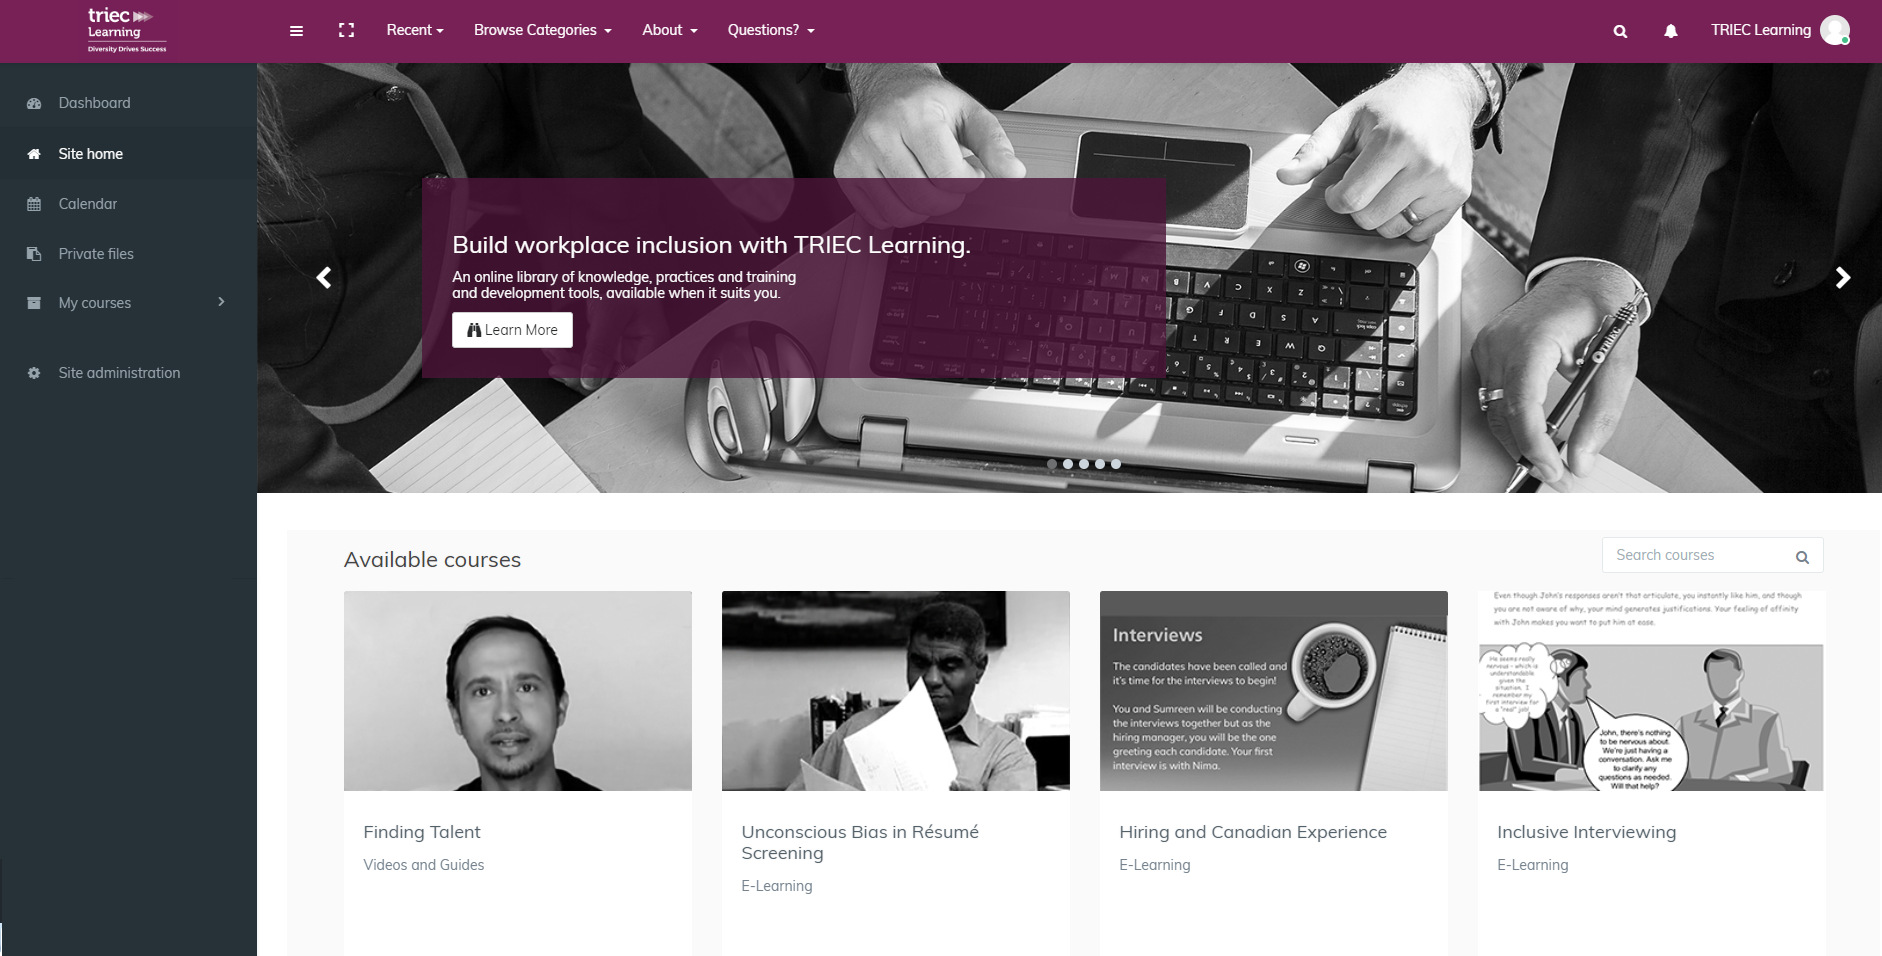 TRIEC Learning Home Page - Edwiser RemUI